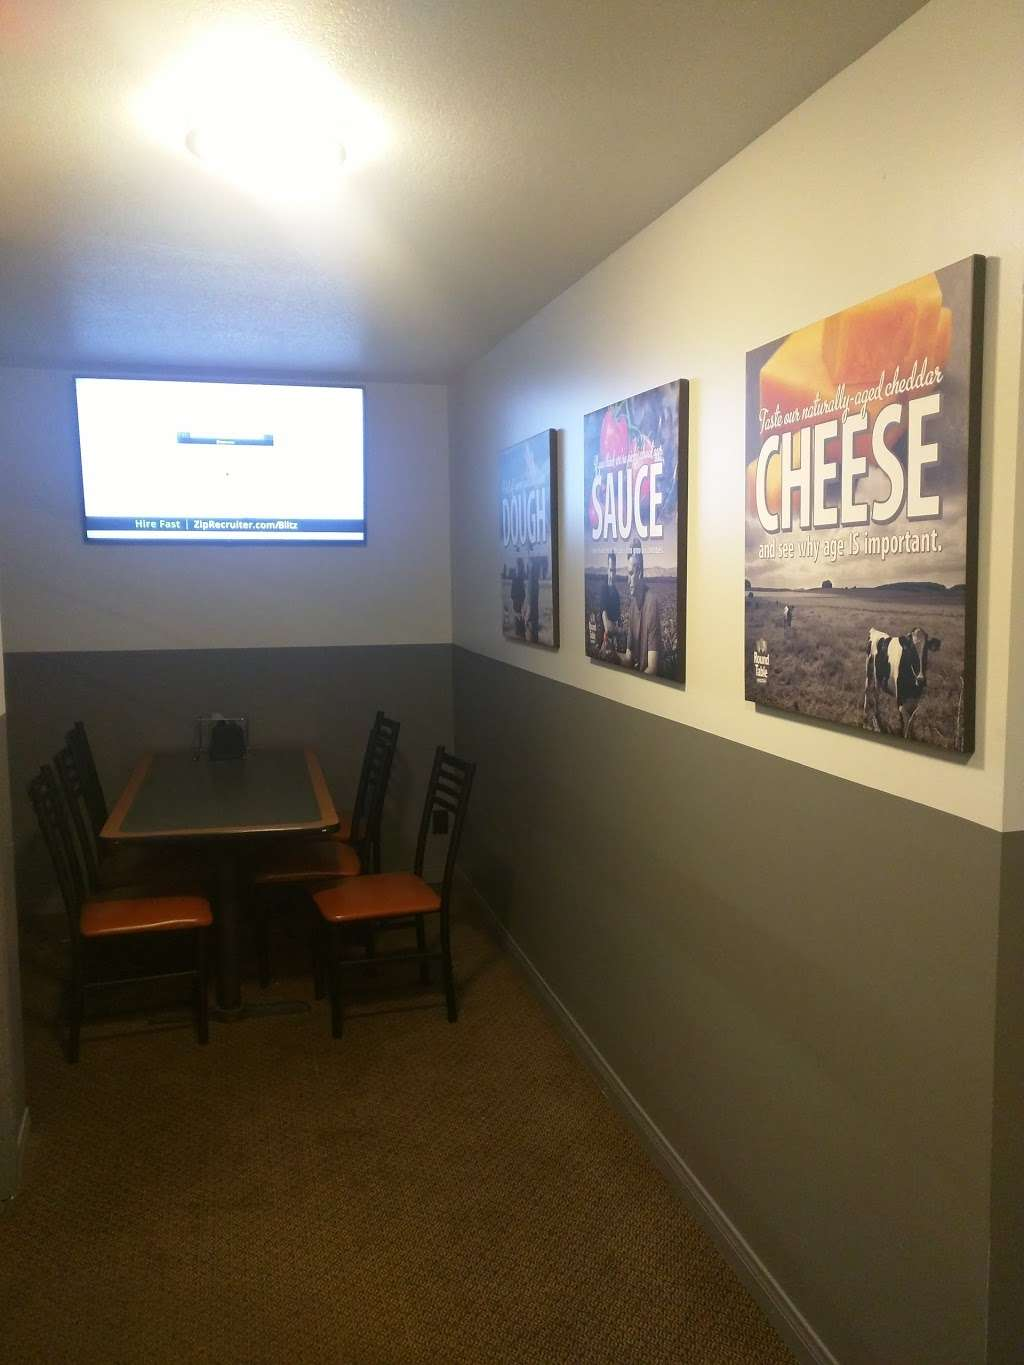 Round Table Pizza - meal delivery    Photo 3 of 6   Address: 732 N Brea Blvd, Brea, CA 92821, USA   Phone: (714) 671-2821